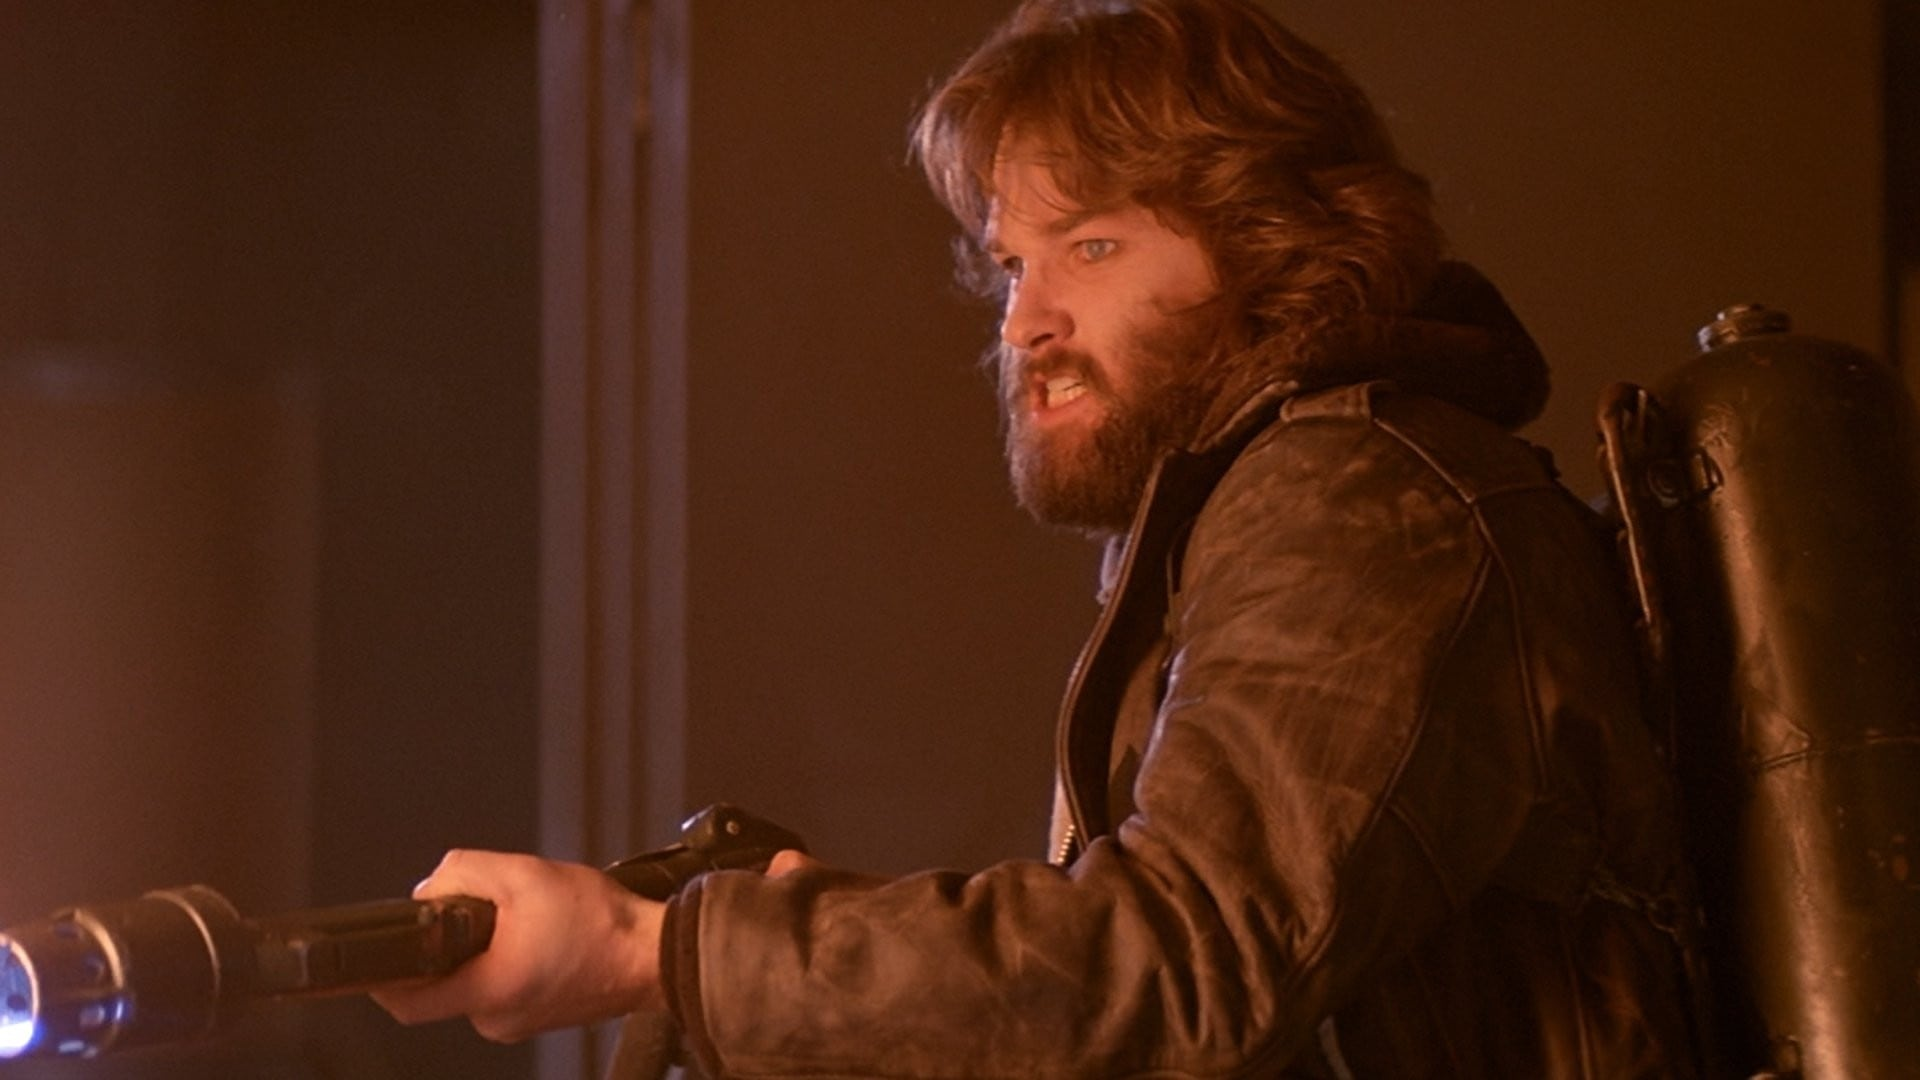 Can Christians Watch Kurt Russel in John Carpenter's Horror Movie The Thing?